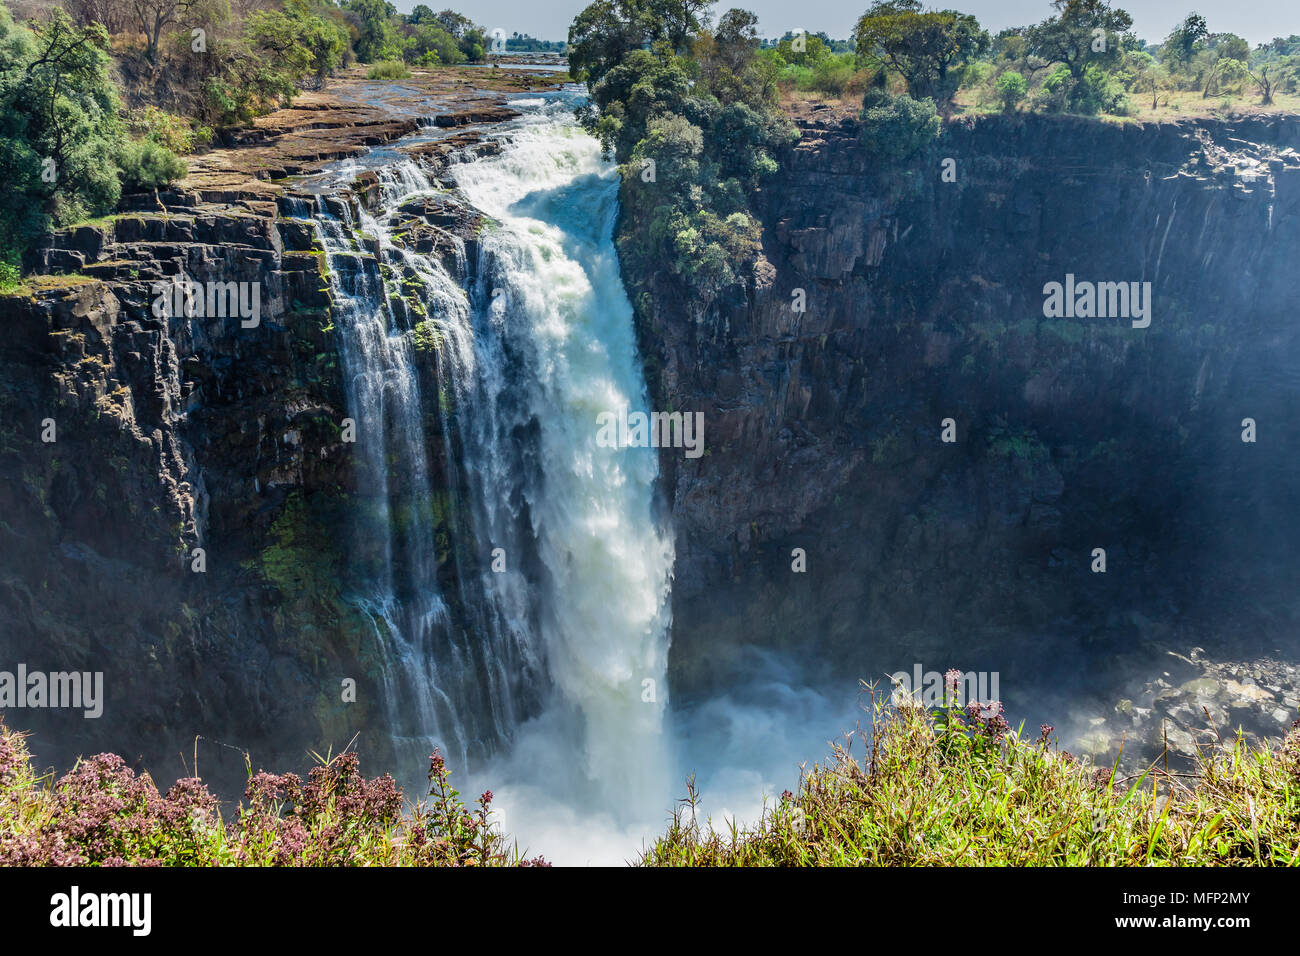 Devil's Cataract is on the Zimbabwe side of Victoria Falls, and is the lowest of the 5 falls with a drop of 60 meters. - Stock Image